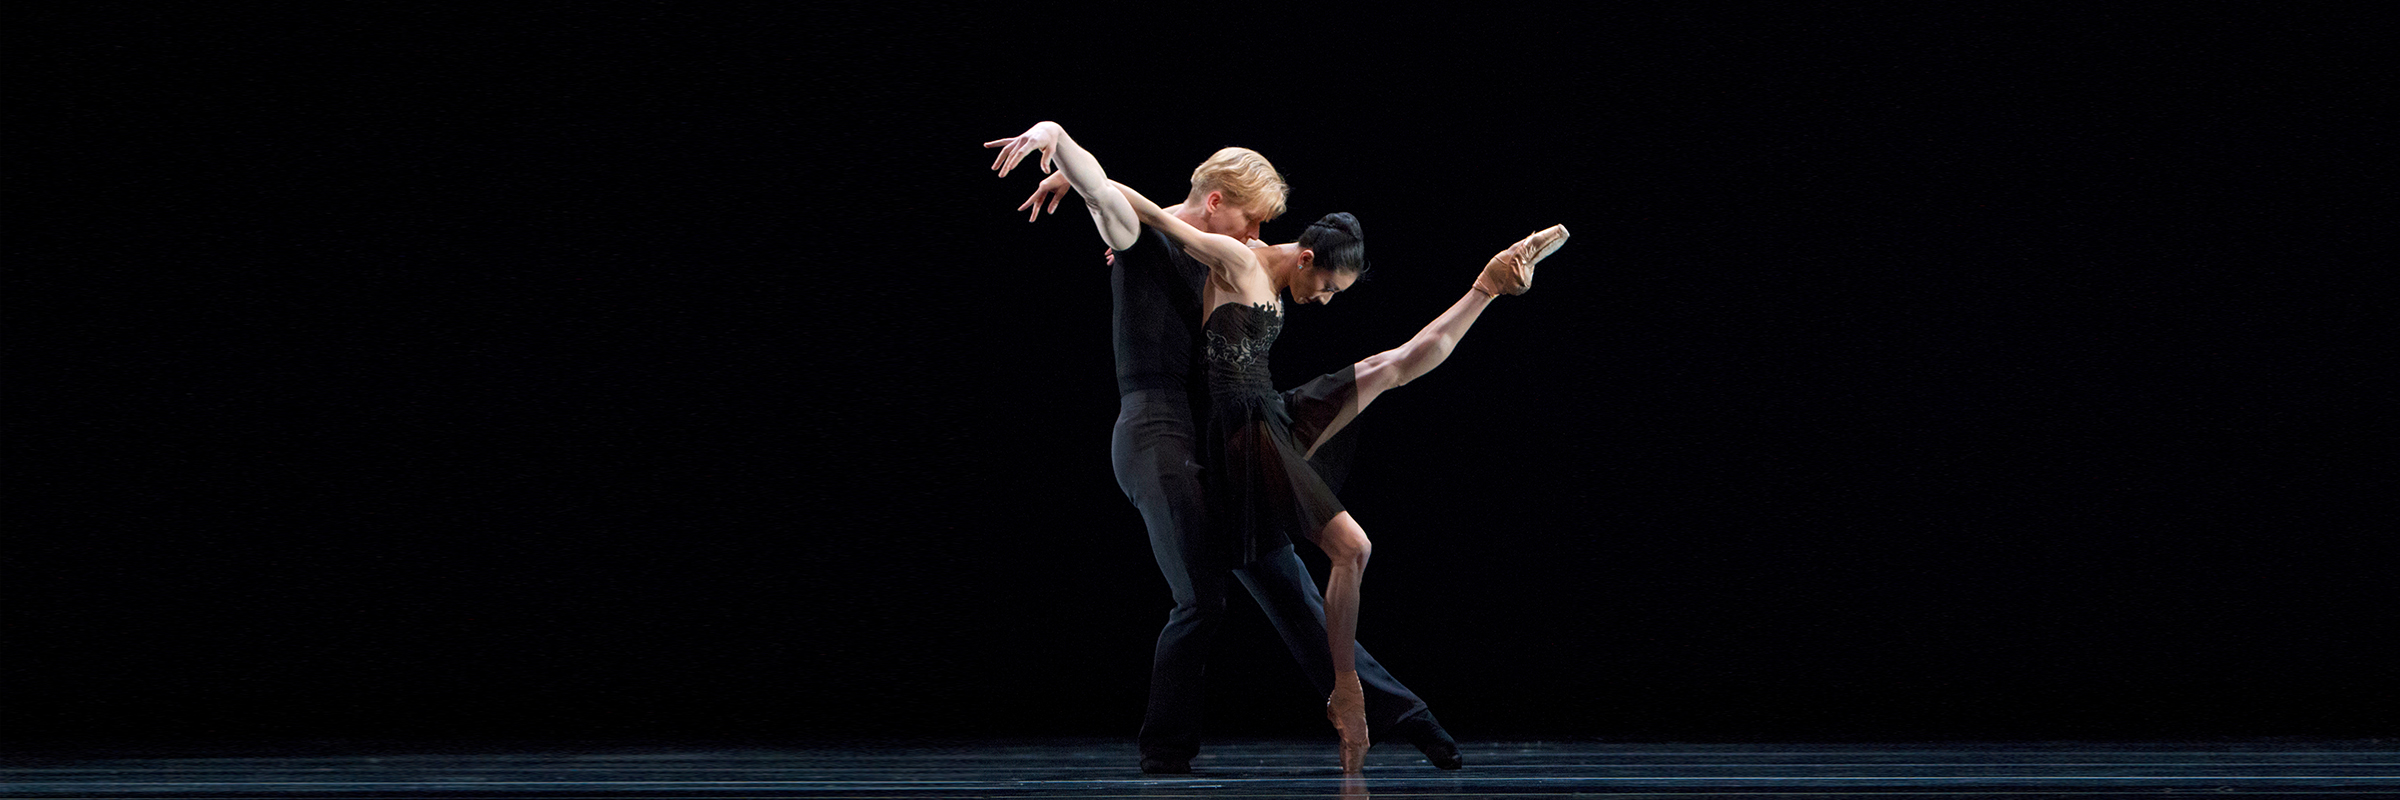 Yuan Yuan Tan And Tiit Helimets in Tomasson's 7 For Eight. (© Chris Hardy)